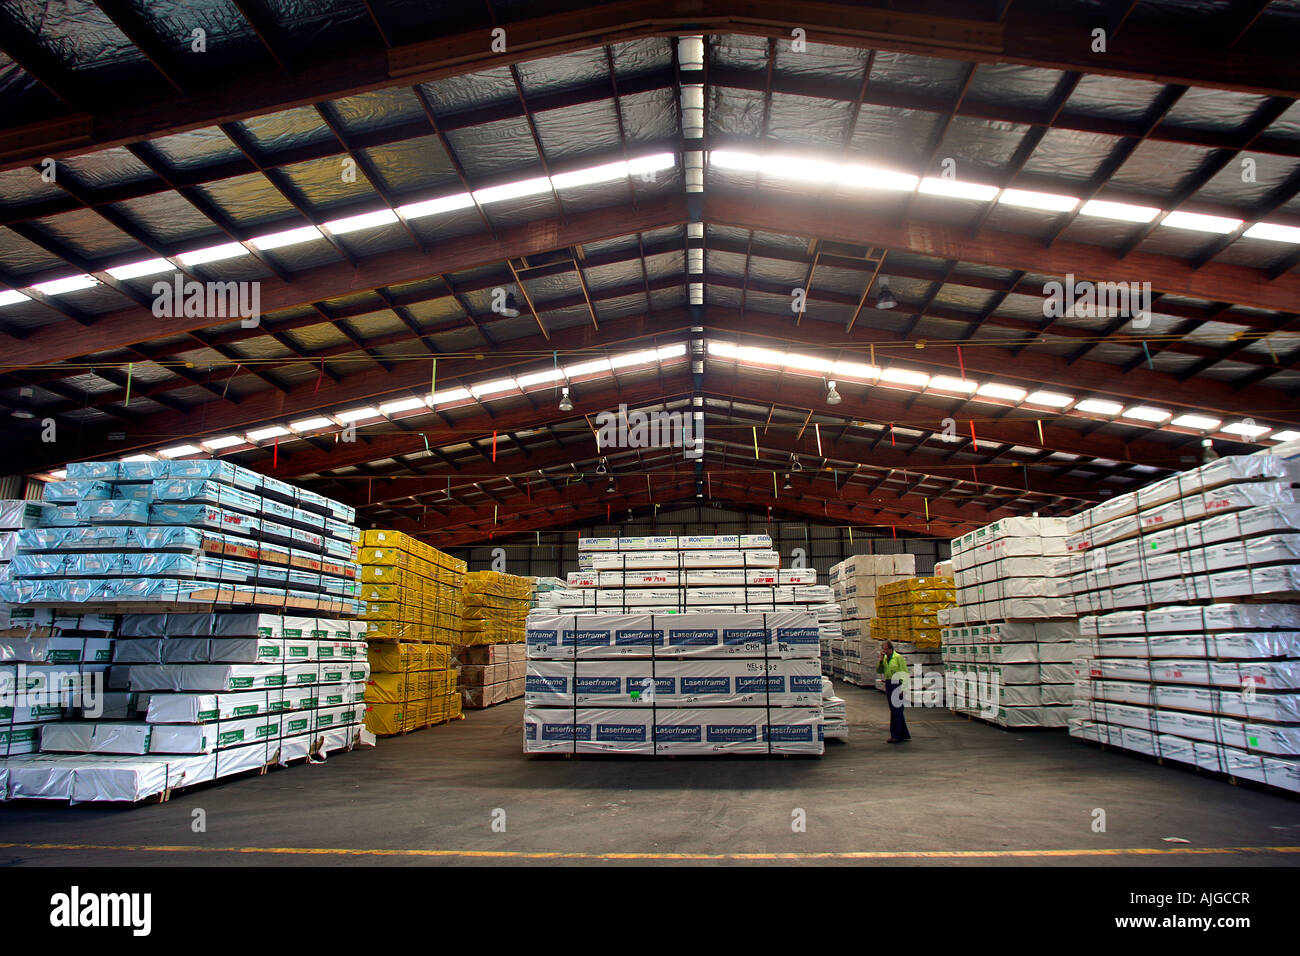 Shed 3 at Port Nelson Nelson New Zealand where fumigation of timber for export takes place using methyl bromide - Stock Image